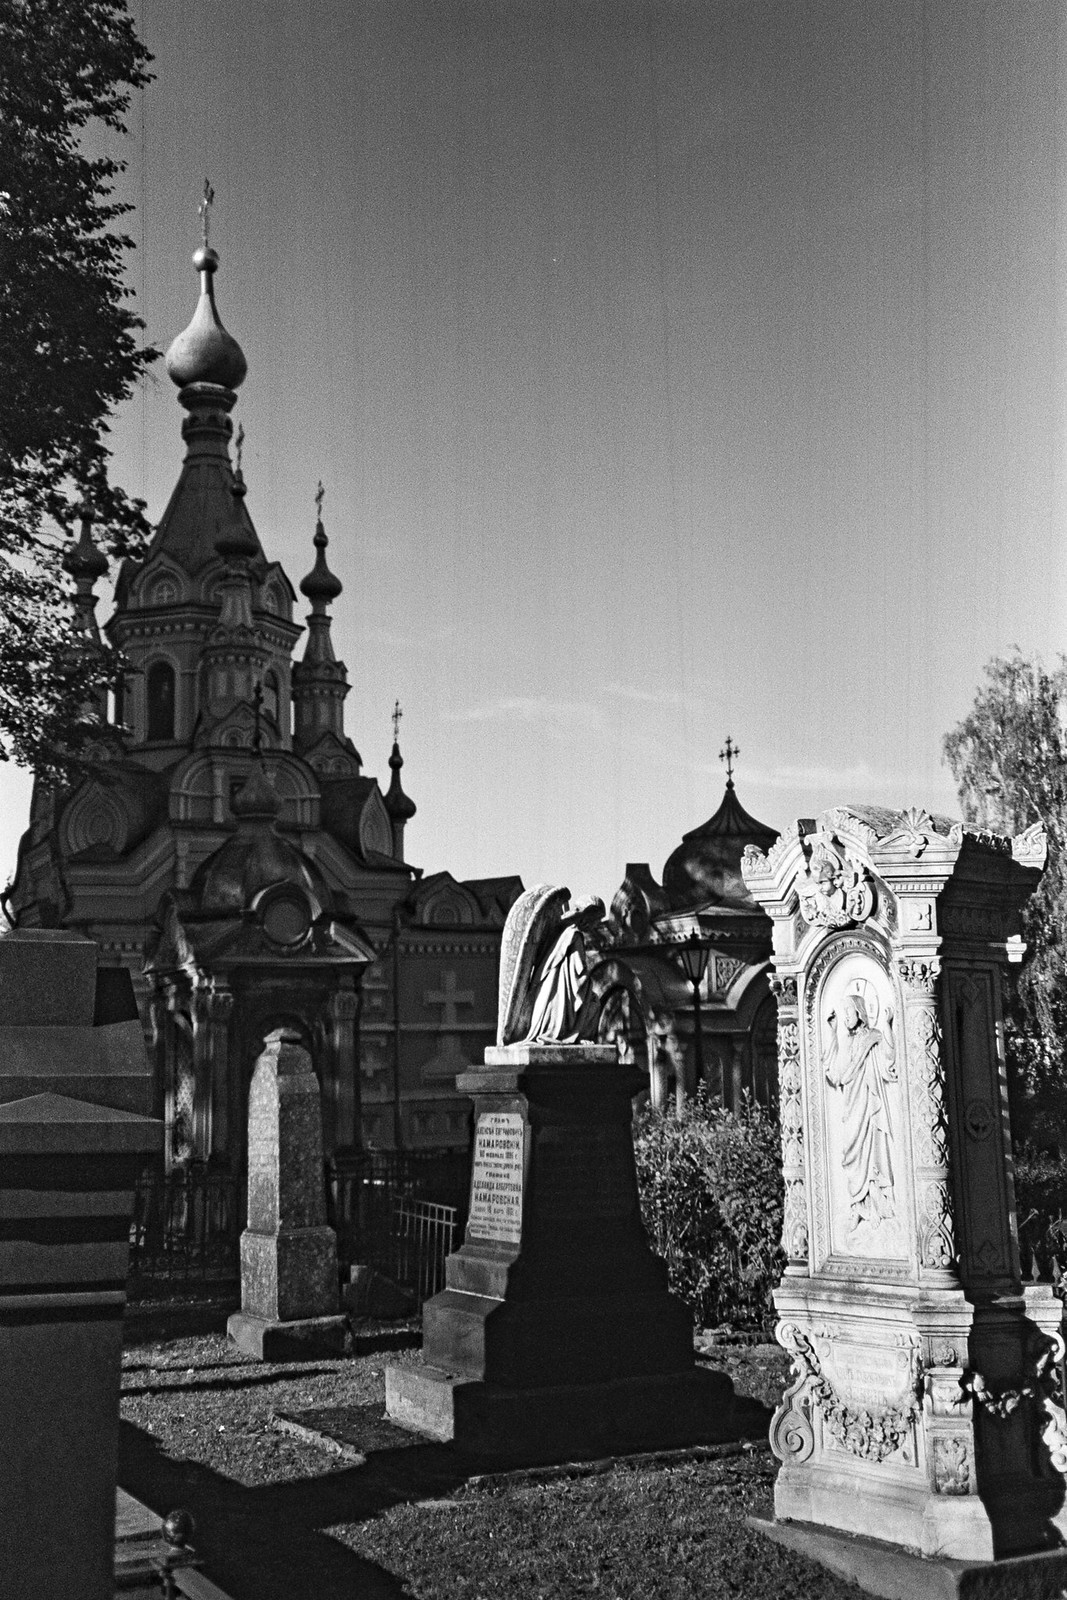 The Necropolis of the Donskoy Monastery